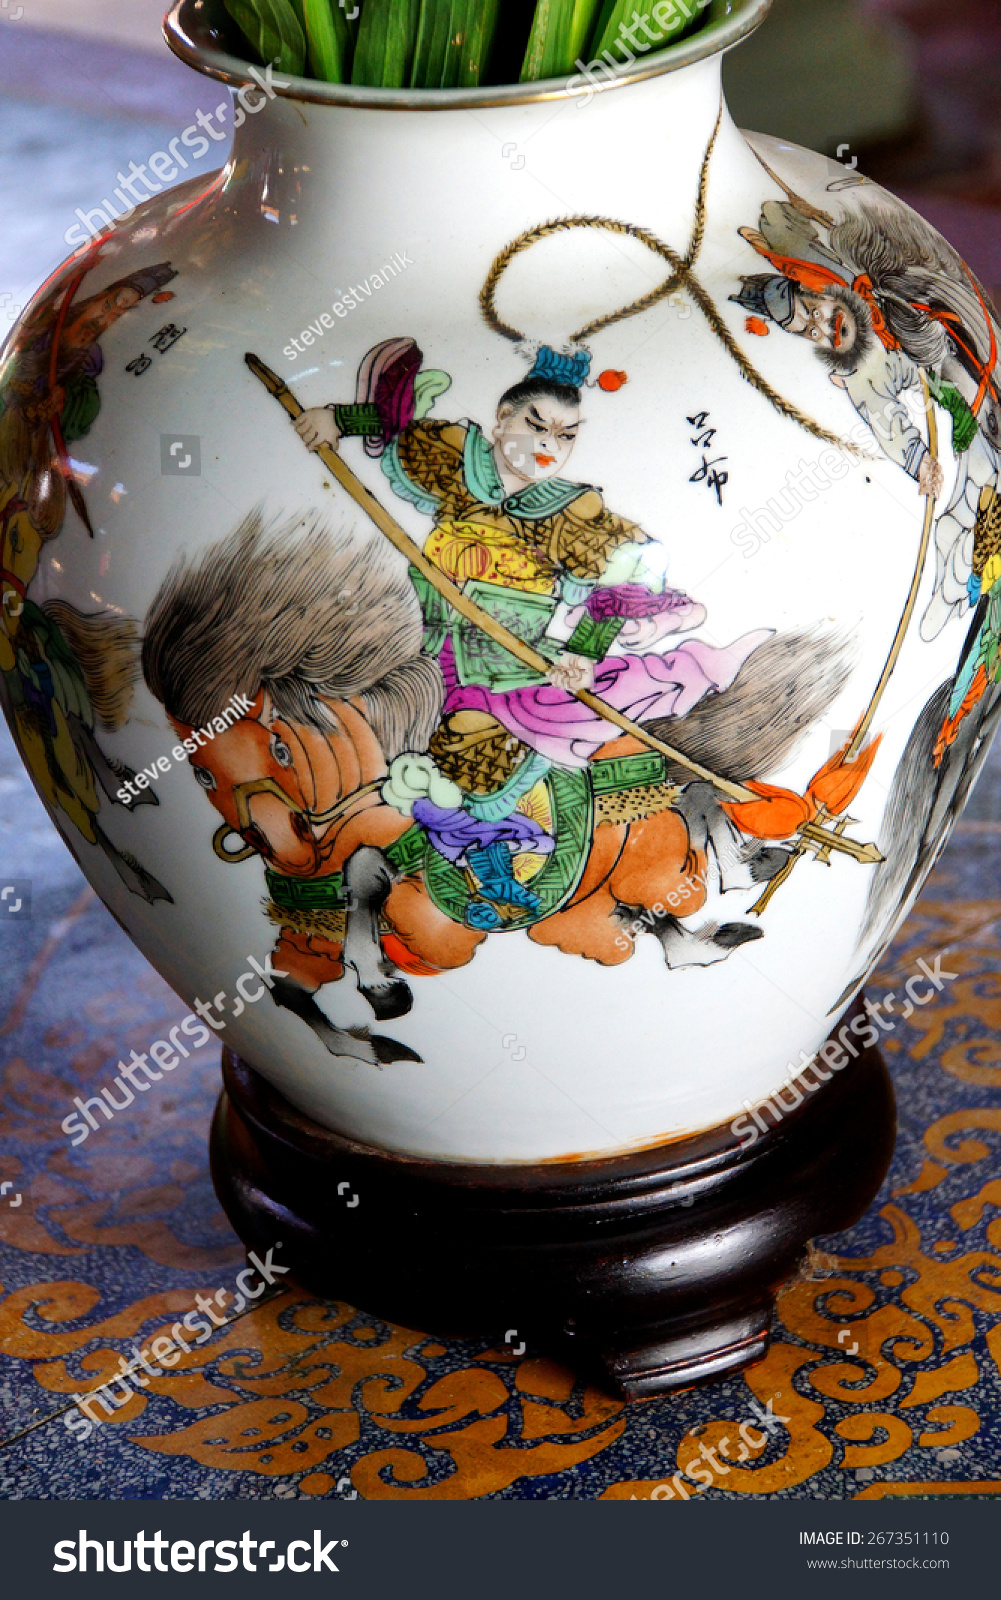 Chinese mounted warrior painting on vase stock photo 267351110 chinese mounted warrior painting on vase in fukian assembly hall hoi an vietnam reviewsmspy